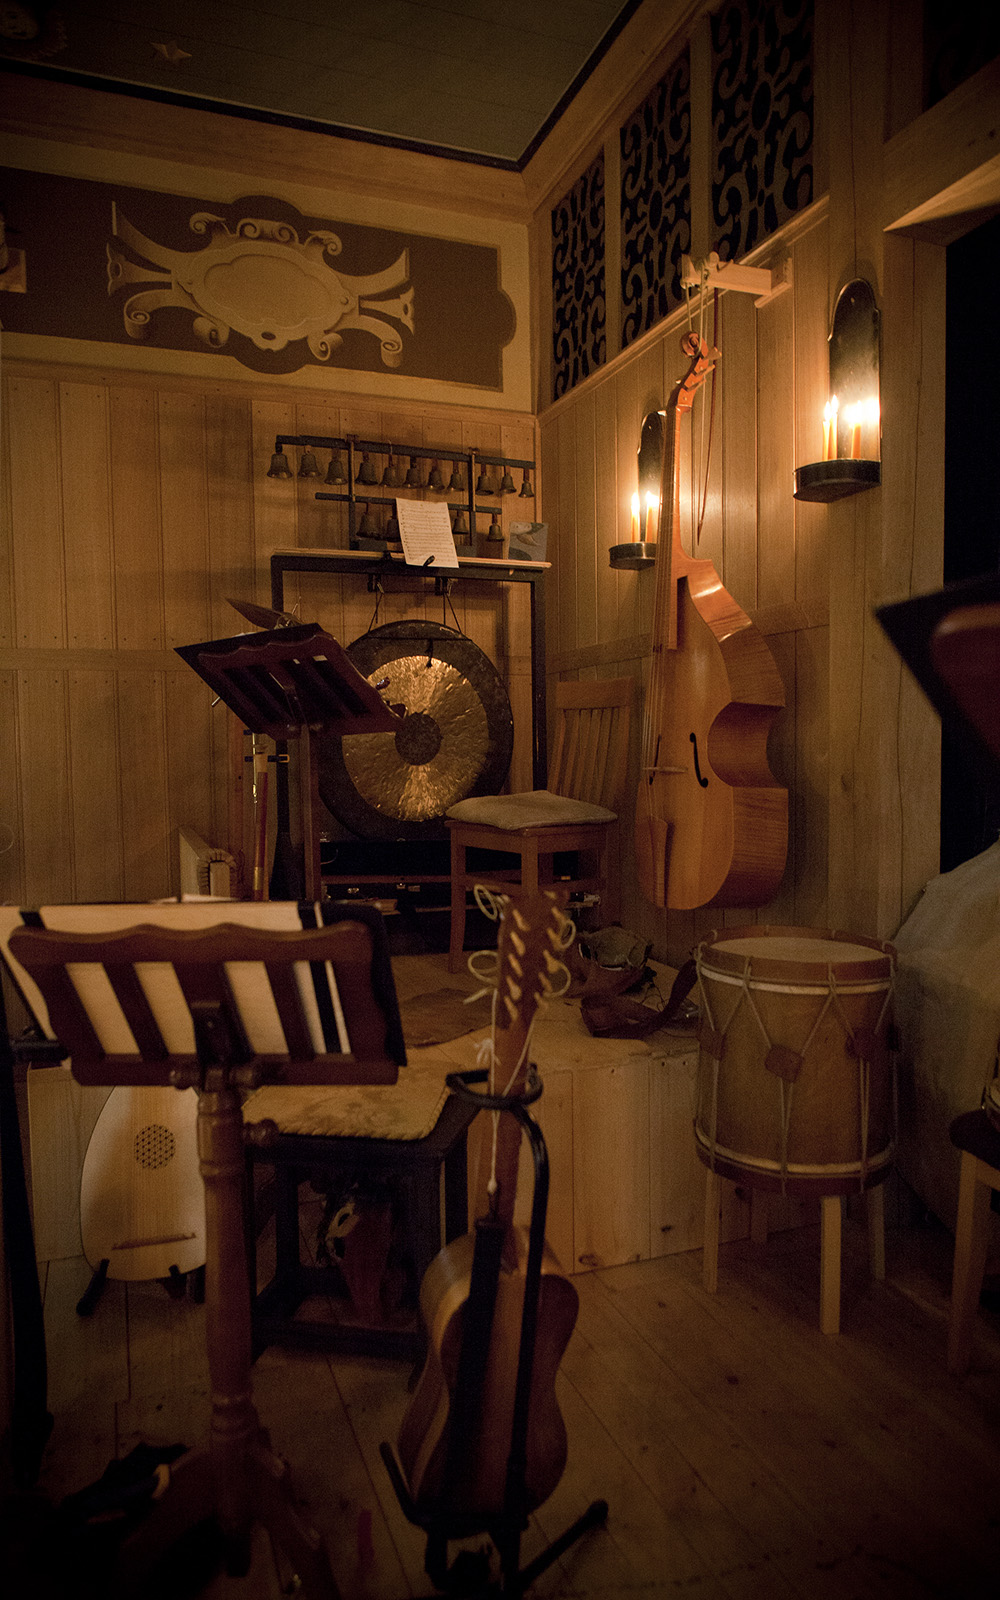 Some instruments sit backstage in a theatre